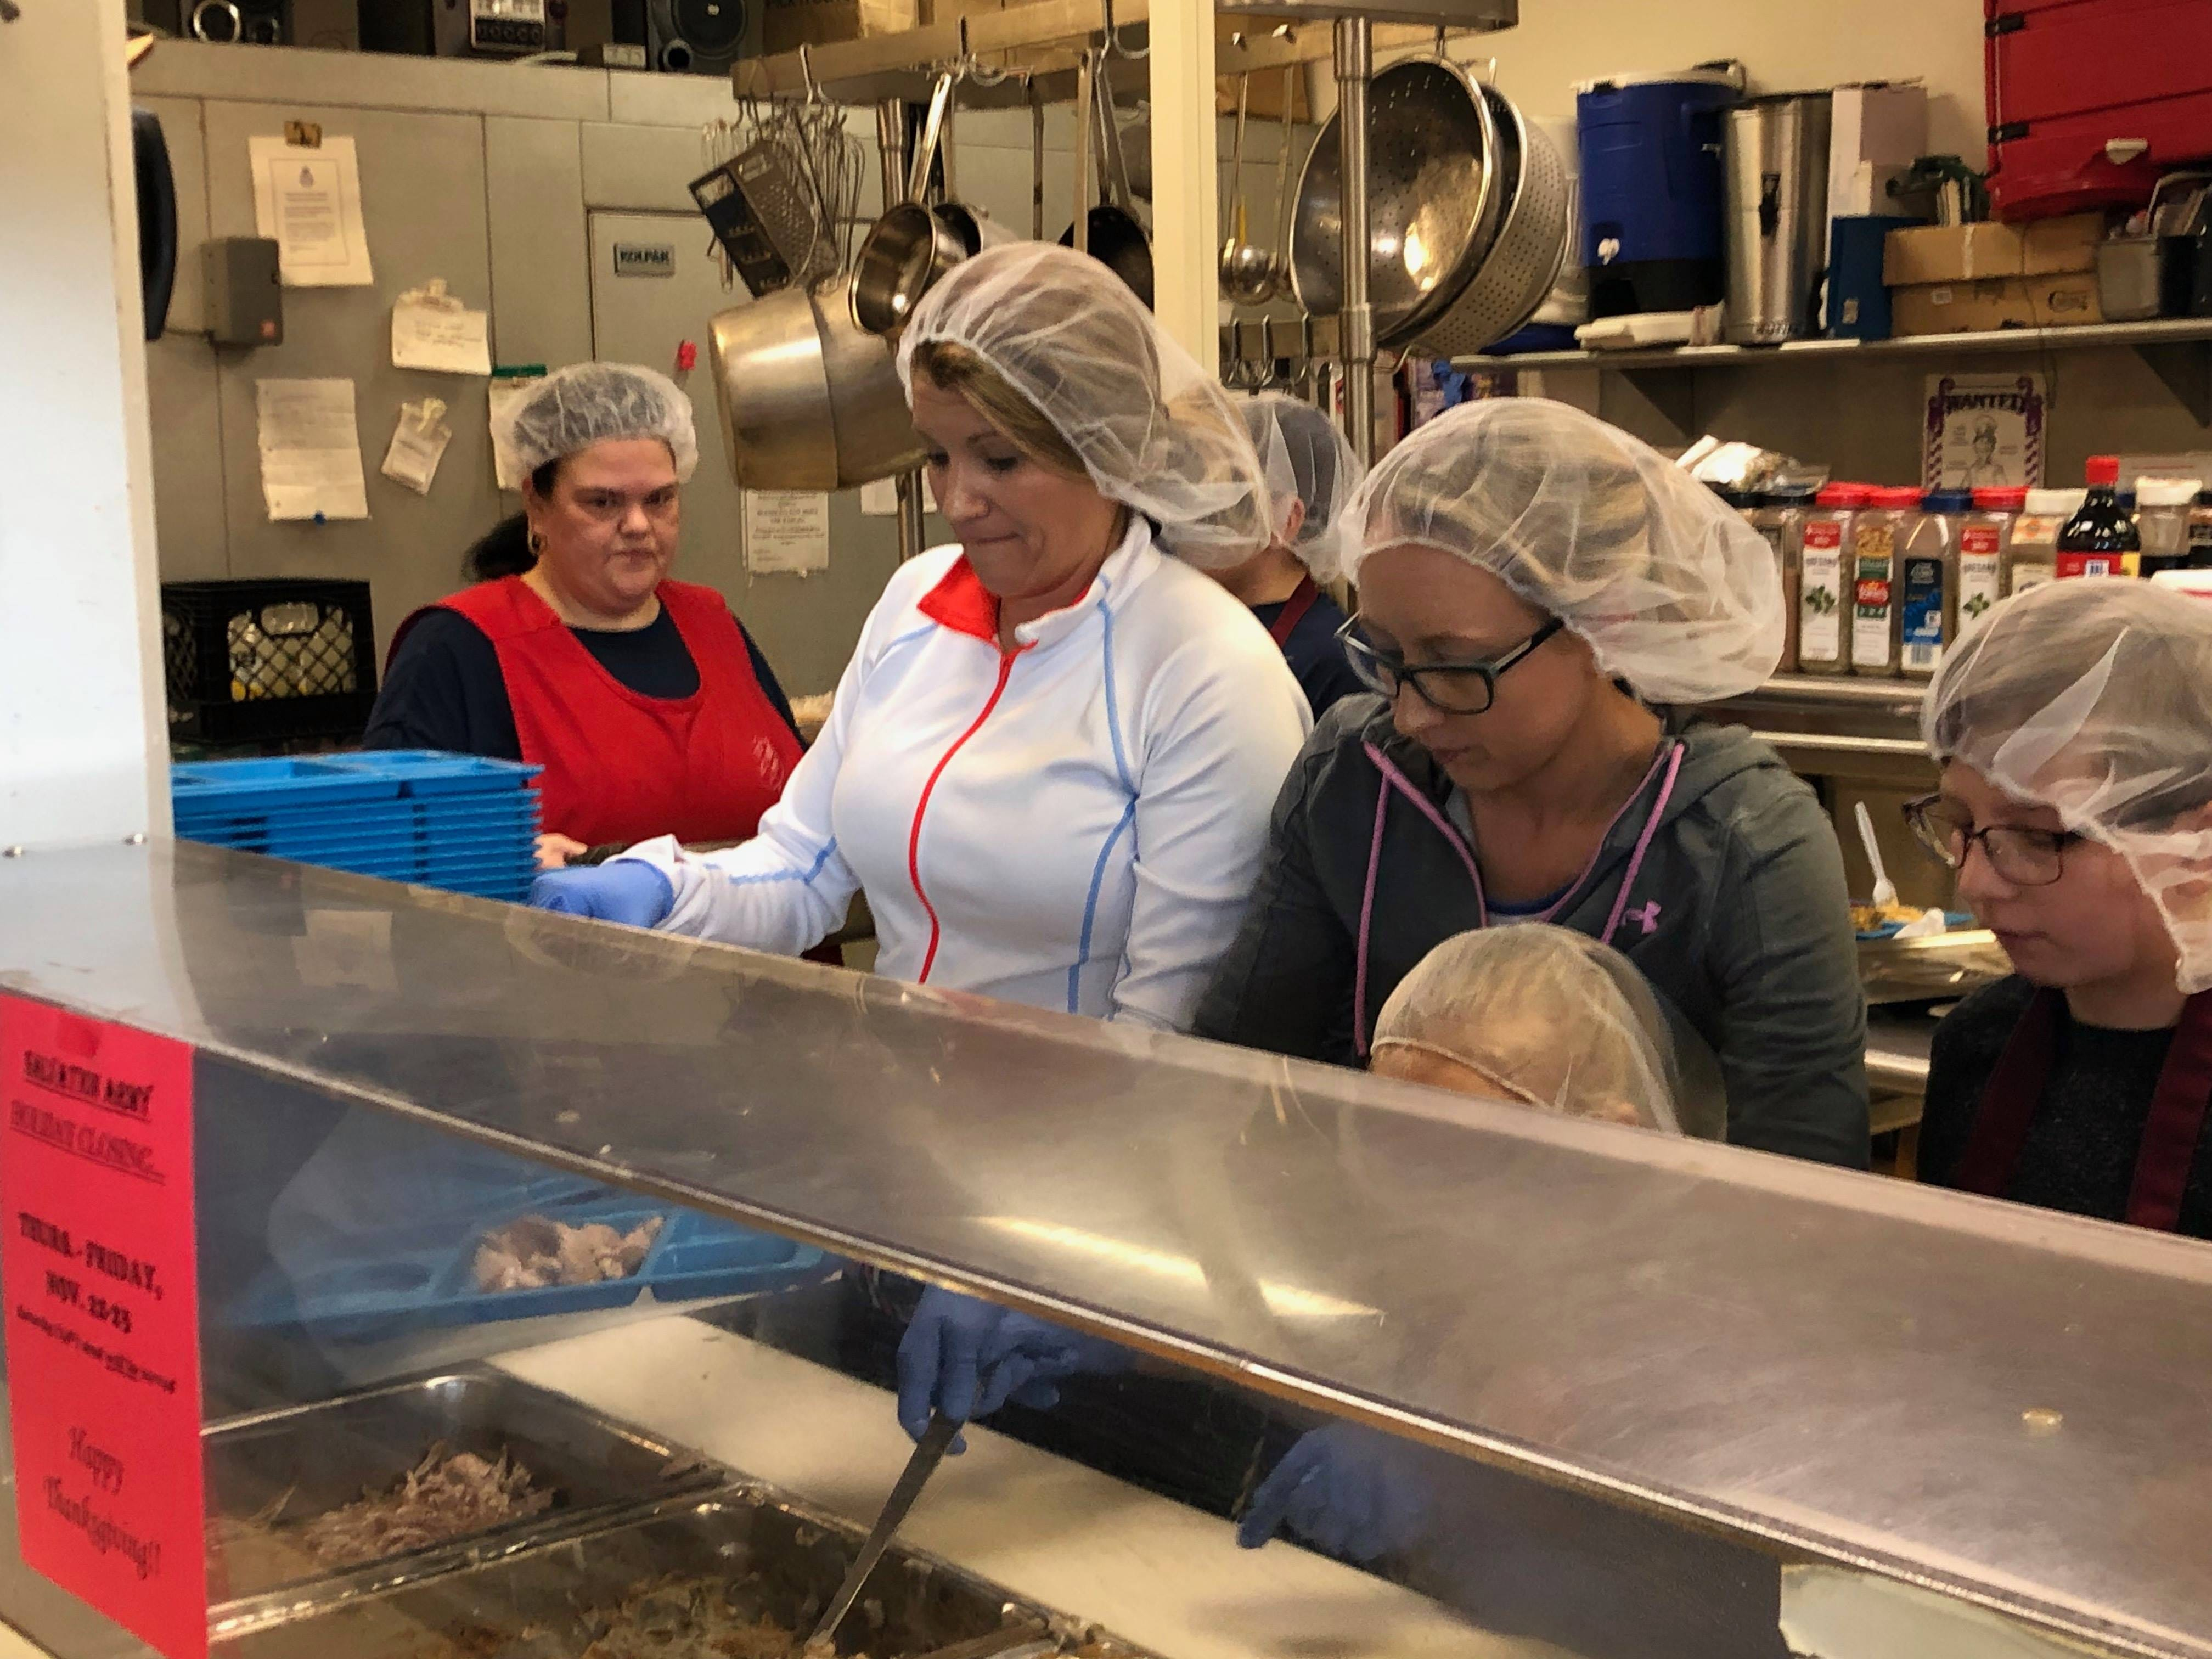 Volunteers at the Salvation Army serve up Thanksgiving food on Nov. 21 in Wausau.